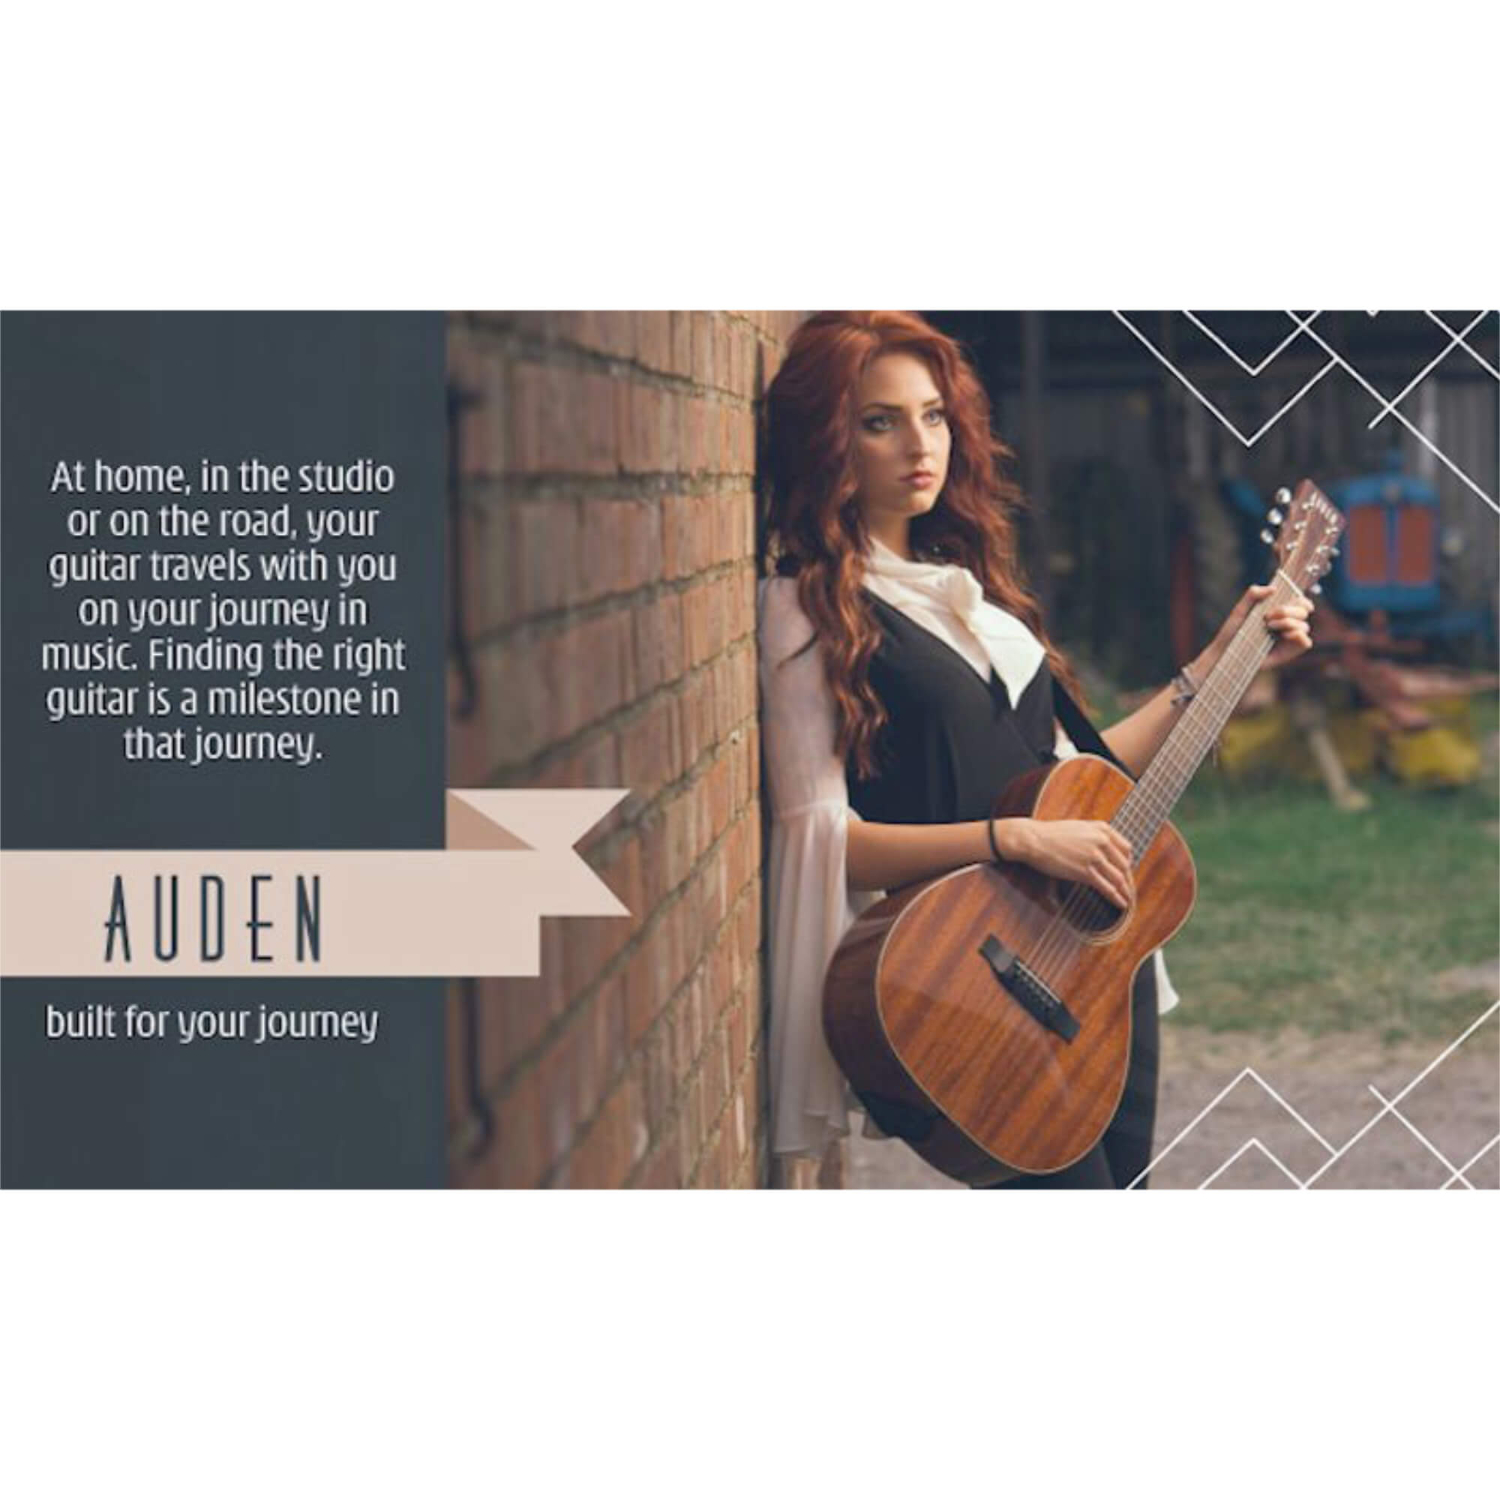 Auden Guitars